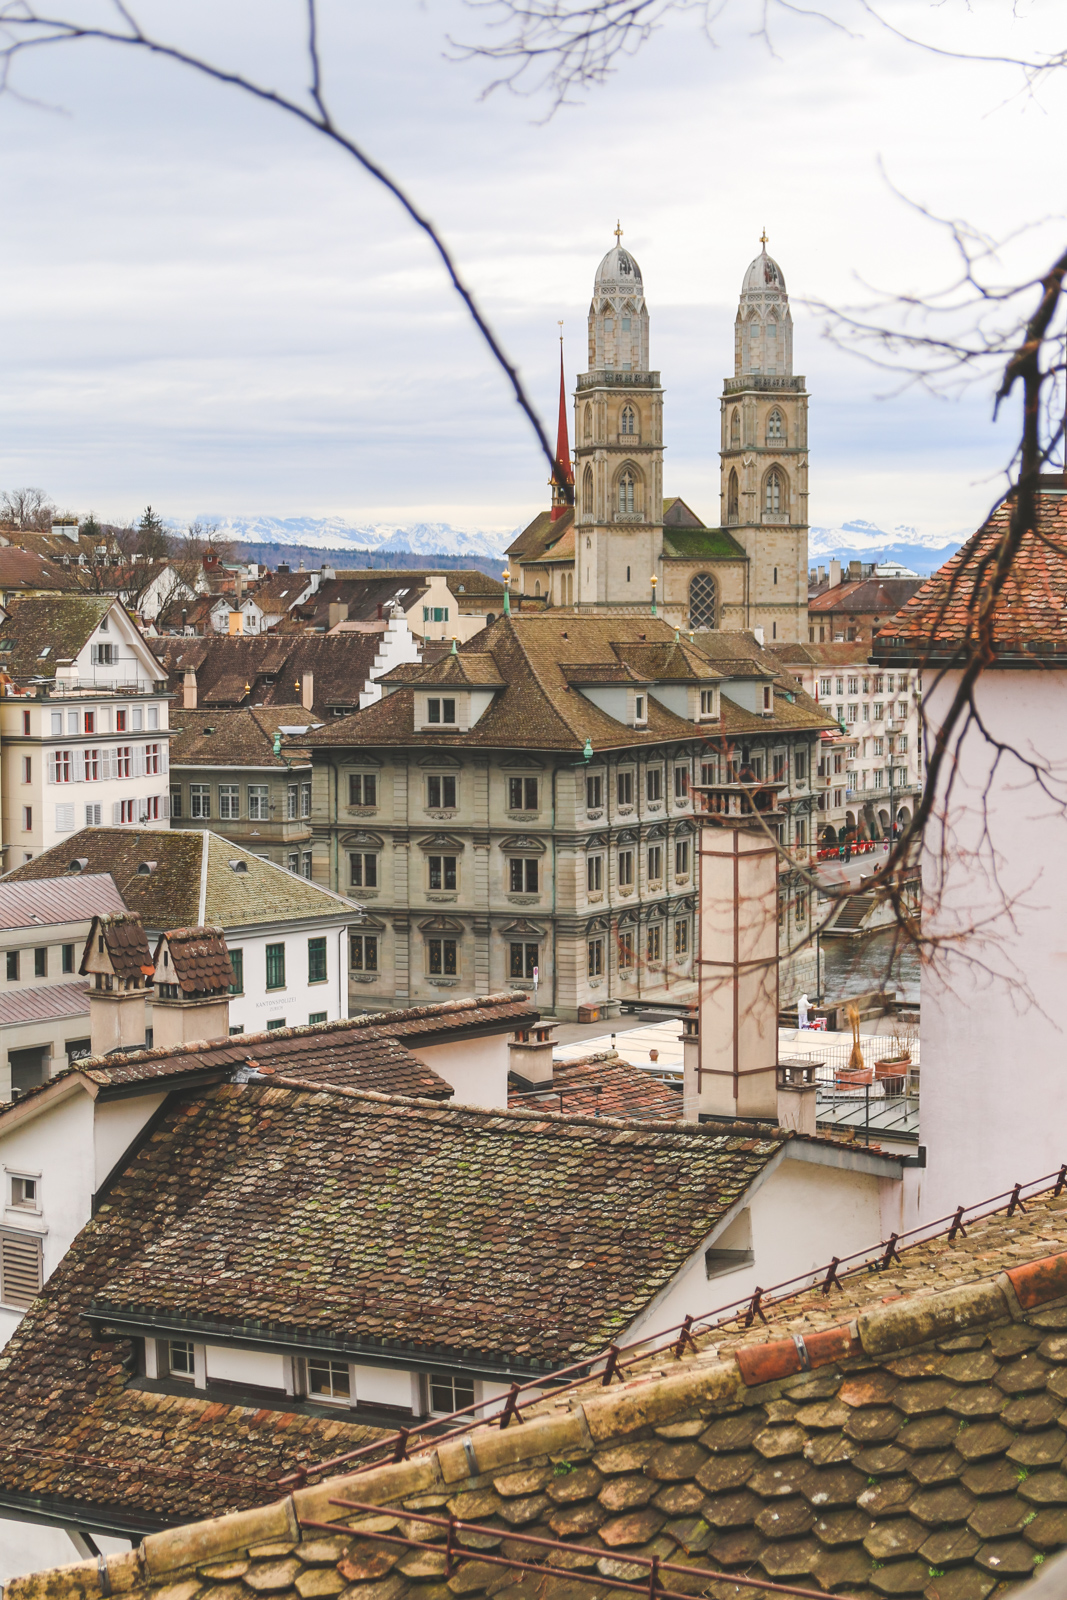 Our 10 Day/8 Night Switzerland Itinerary (Including Travel)